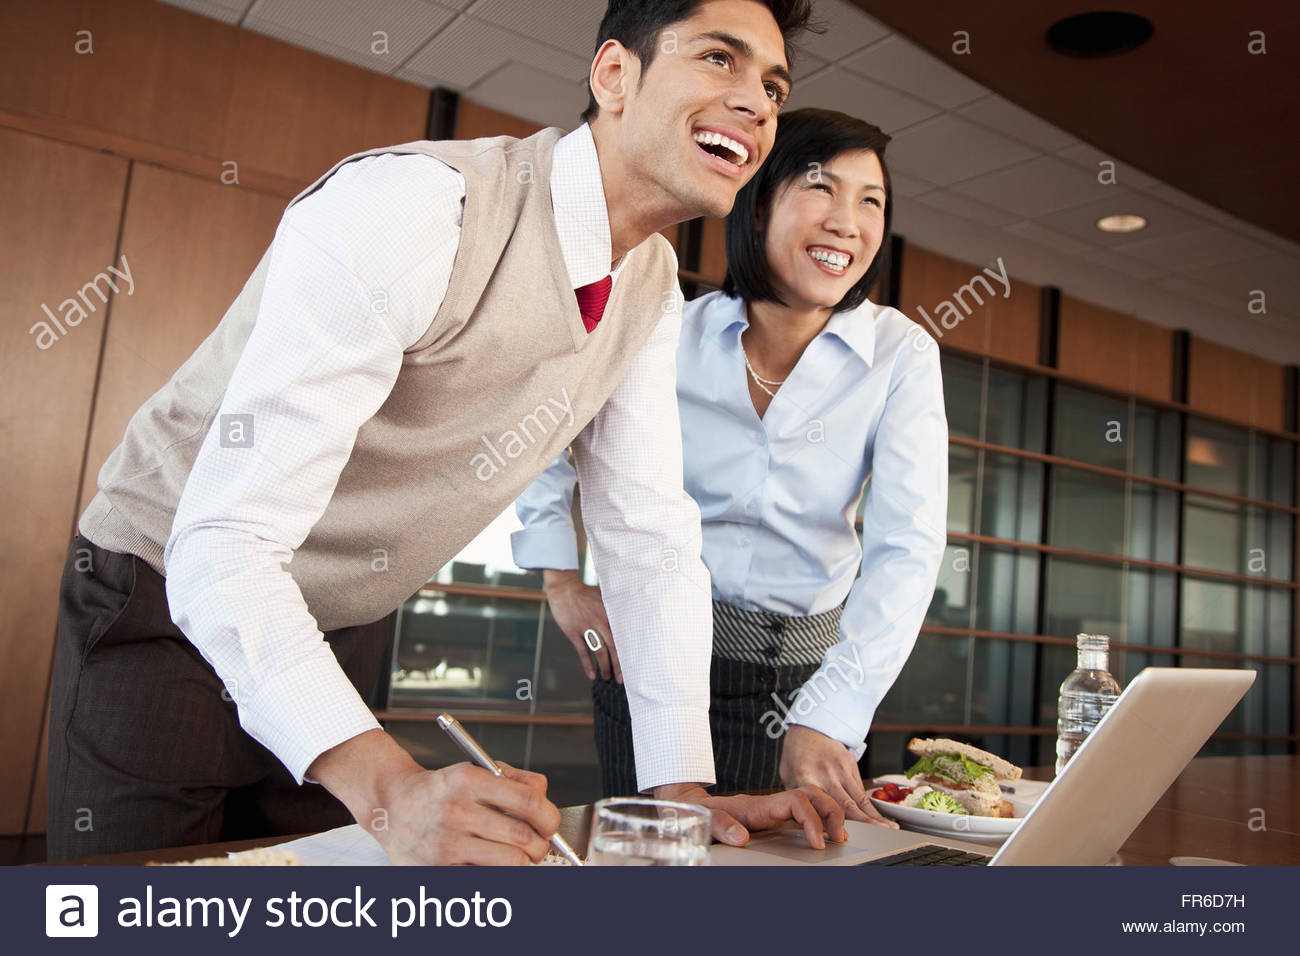 luncheon meeting in conference room - Stock Image